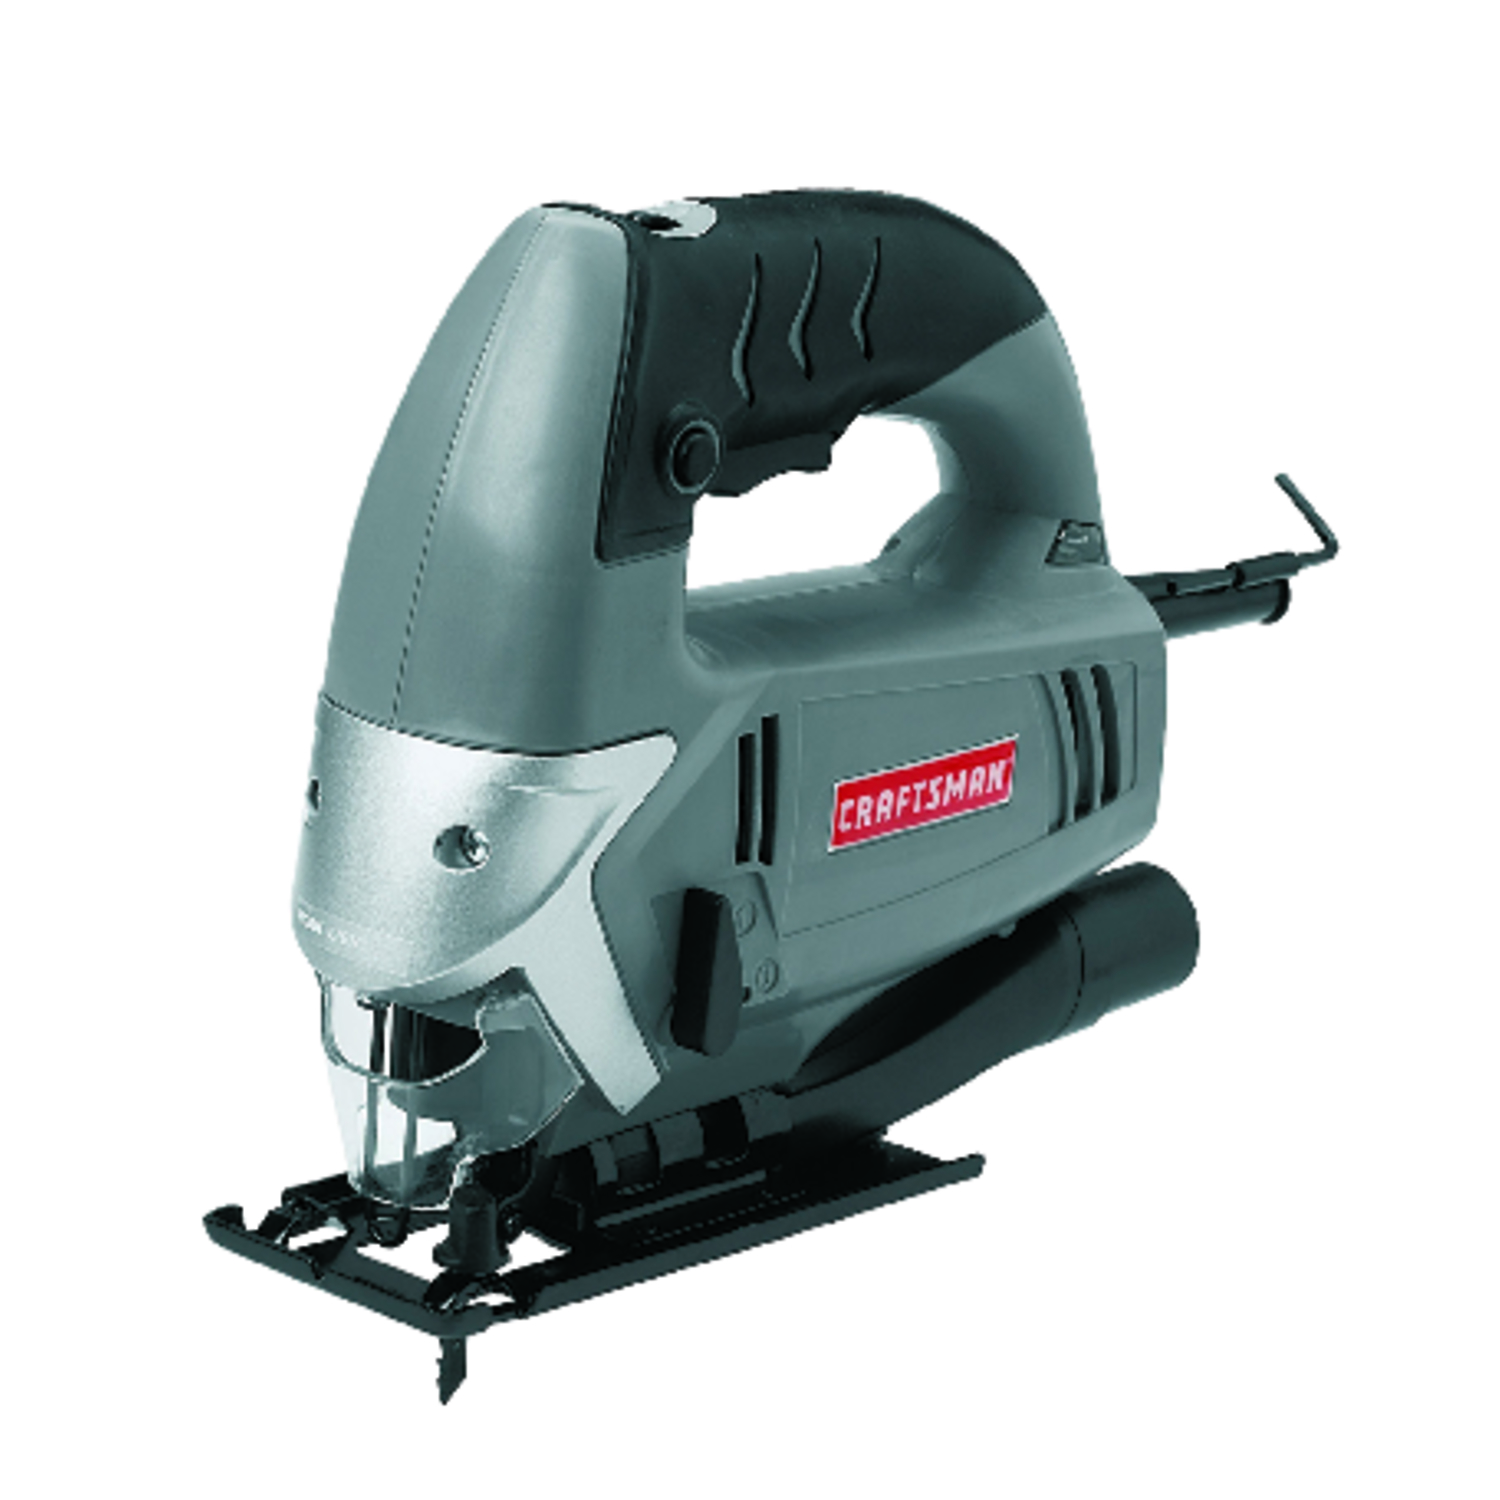 Craftsman 1116 in corded keyless orbital jig saw 48 amps 3000 spm craftsman 1116 in corded keyless orbital jig saw 48 amps 3000 spm greentooth Images